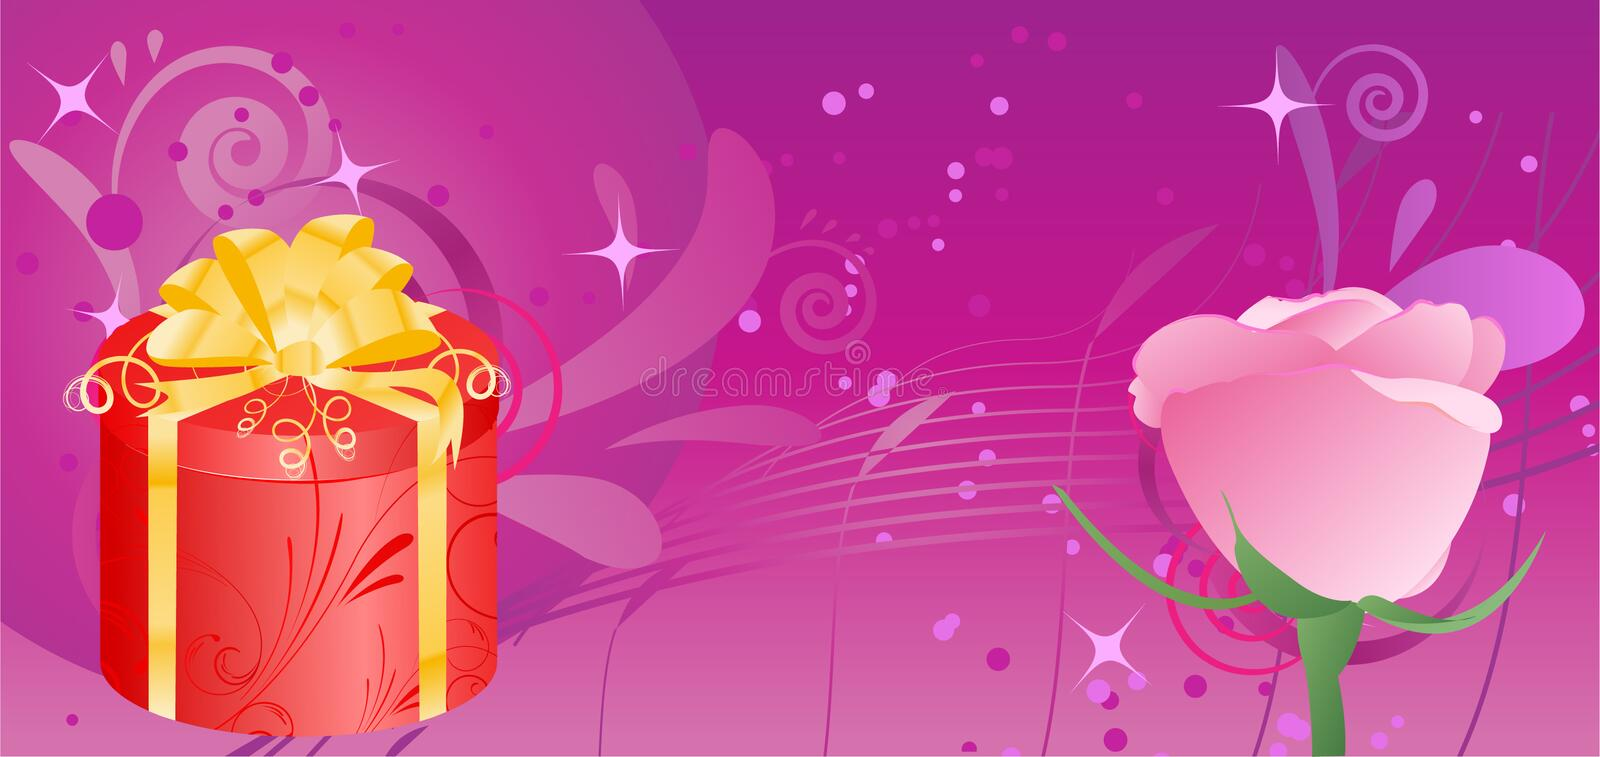 Banner with gift and rose. Birthday banner with gift box and rose on swirl abstract background royalty free illustration